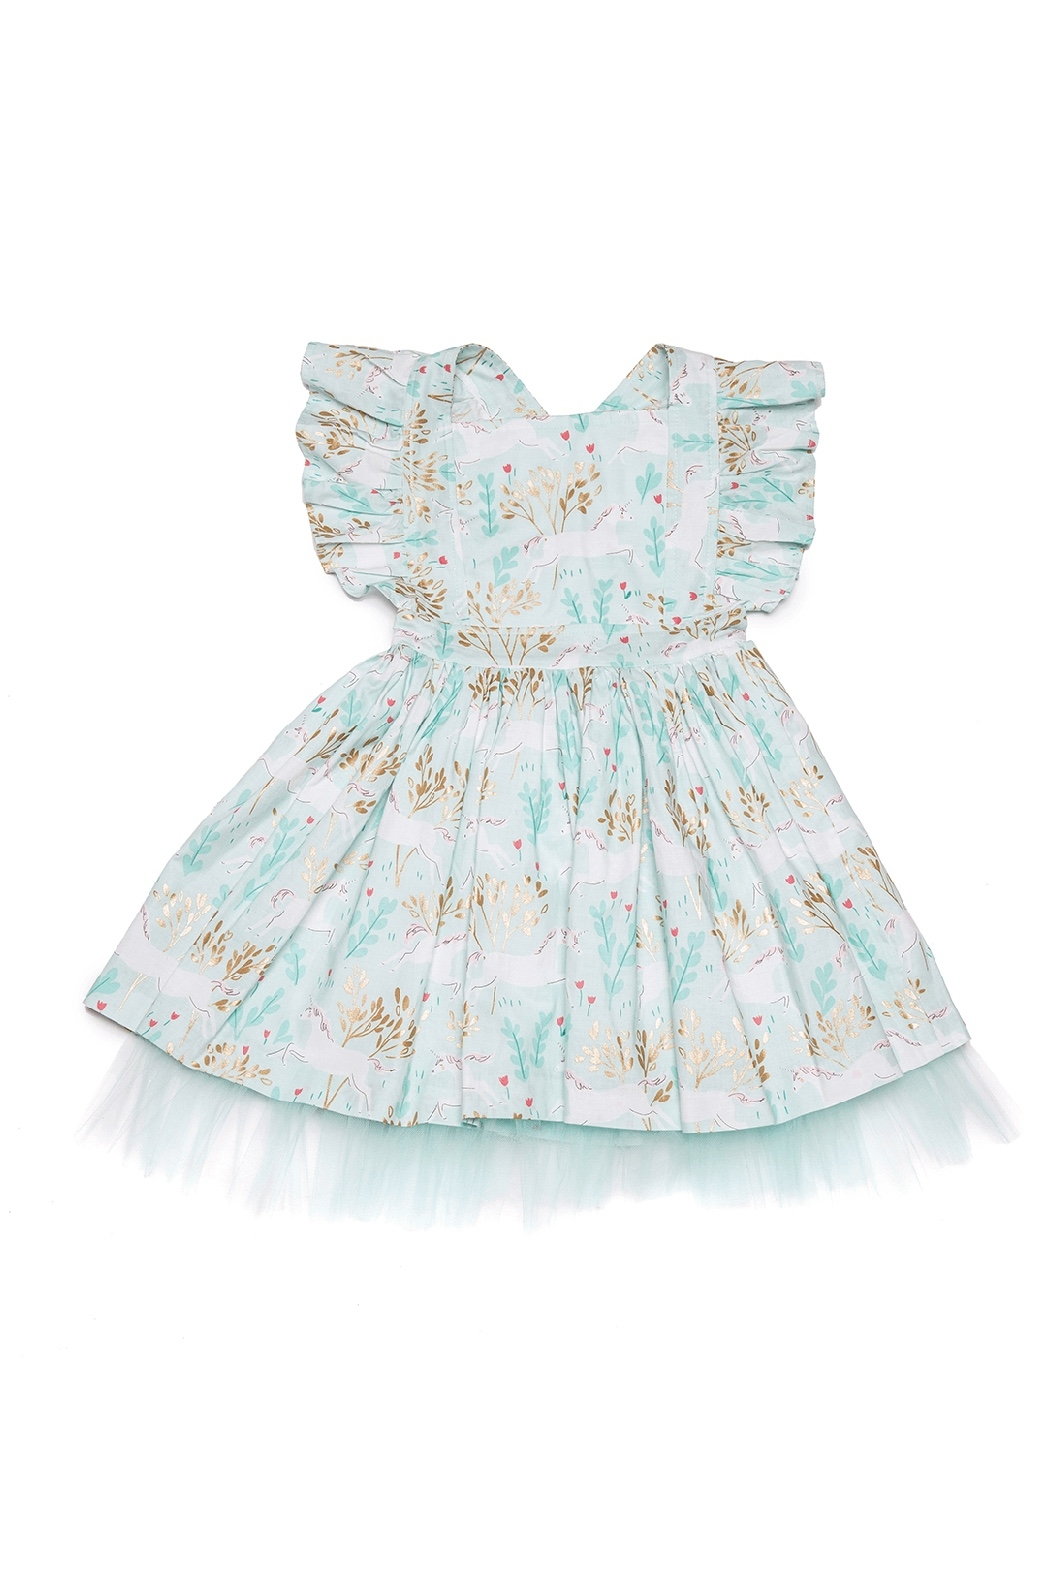 Mandy by Gema Zoe Dress Unicorn Forest Mint - Main Image